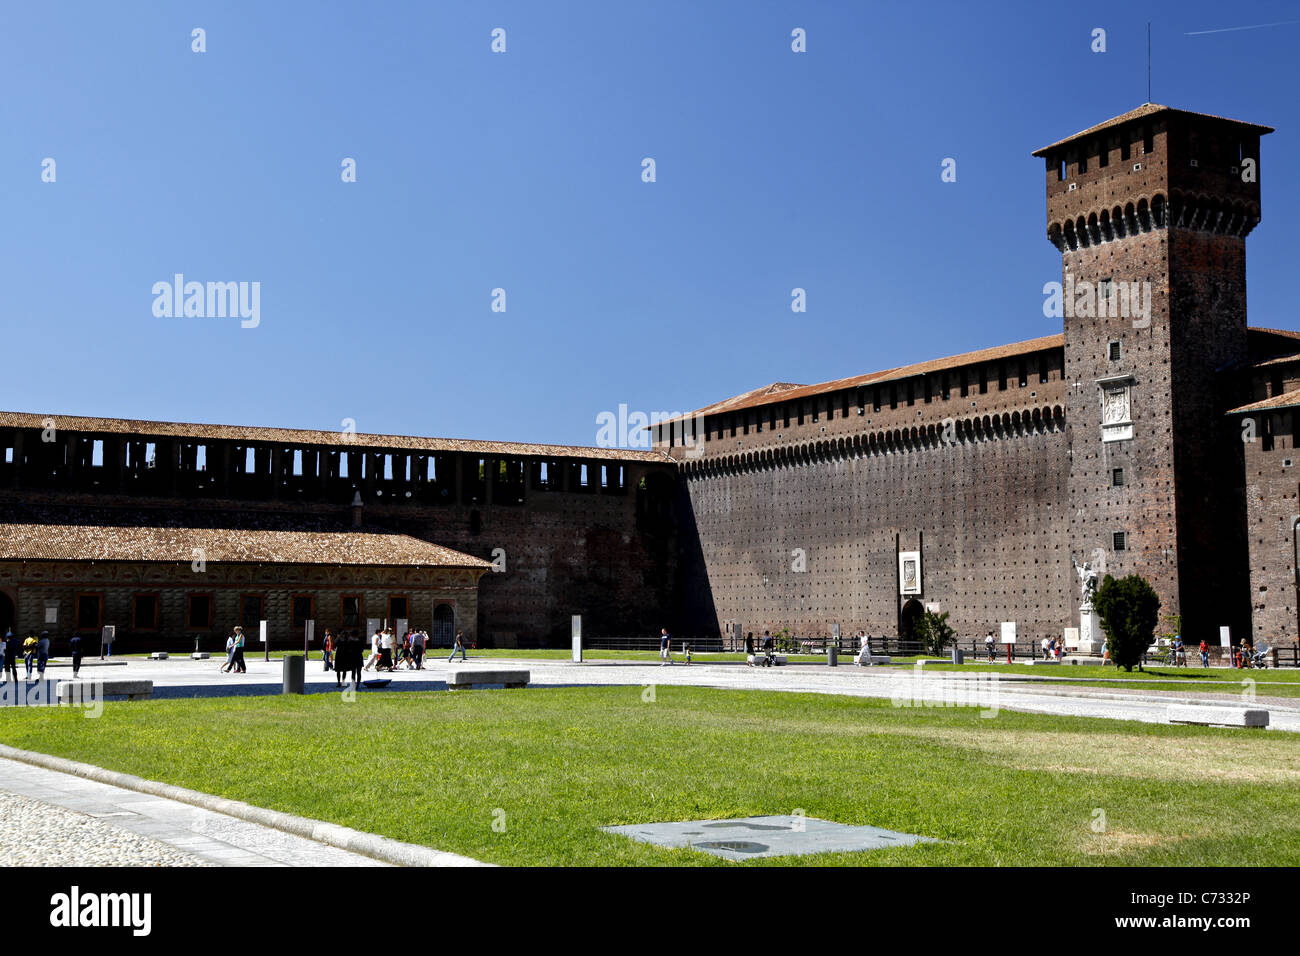 Inside Sforza Castle (Castello Sforzesco) - the residence of the Visconti family, long time rulers of Milan - Stock Image